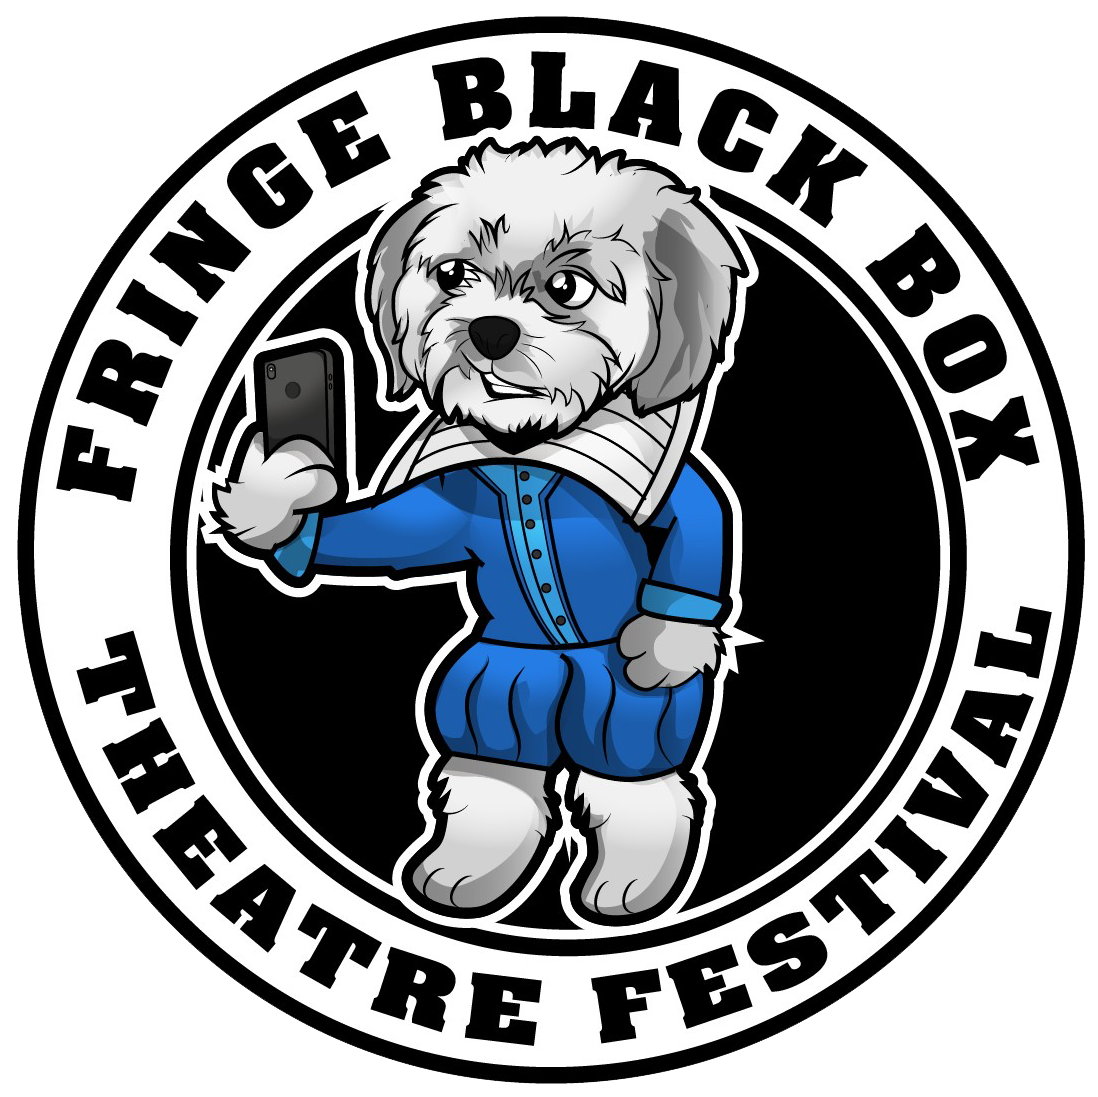 Fringe Black Box Theatre Festival